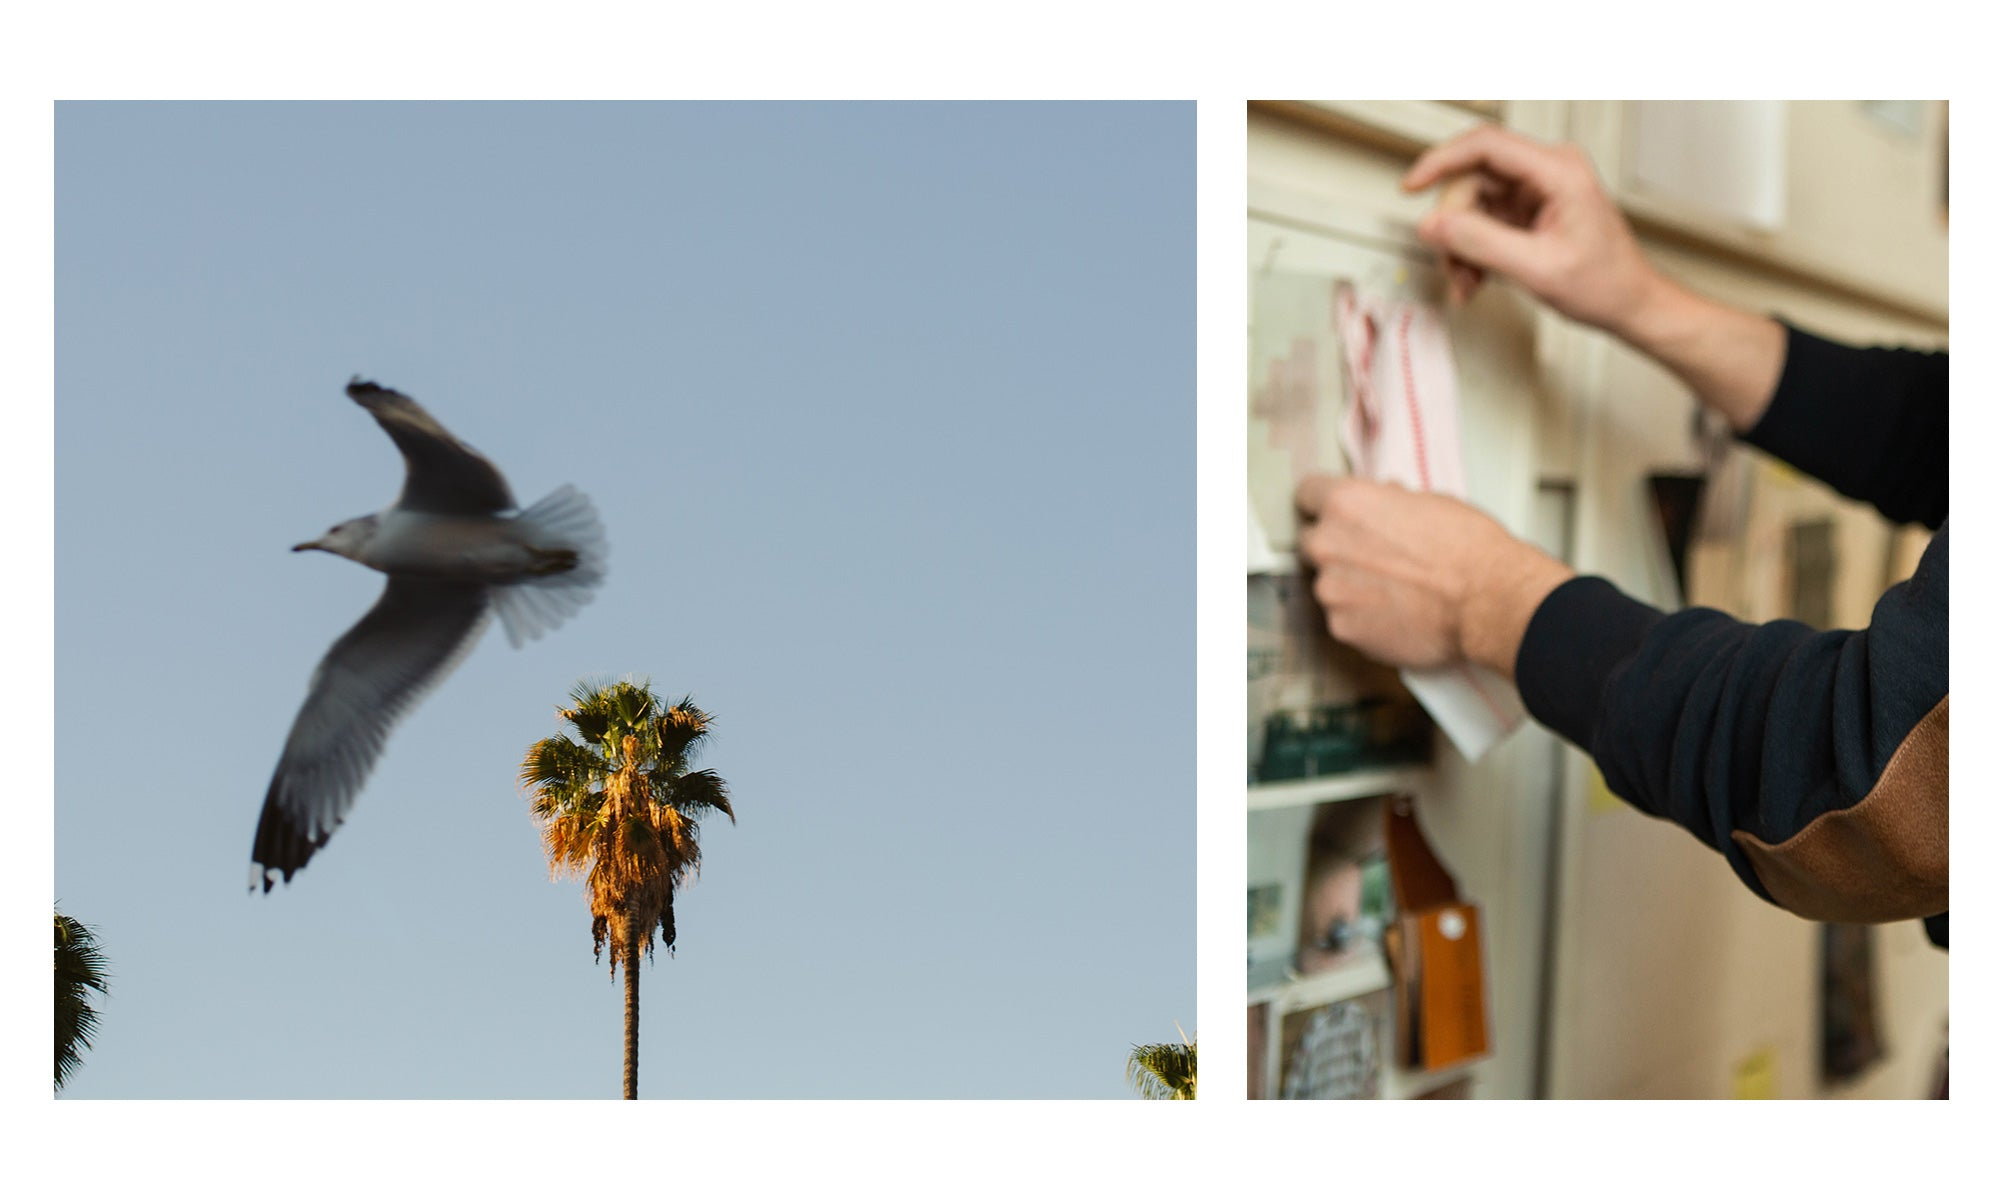 In the Studio with Billy Reid: Left, scenic image from California; Right, close-up of Billy adding details to the design boards in his studio